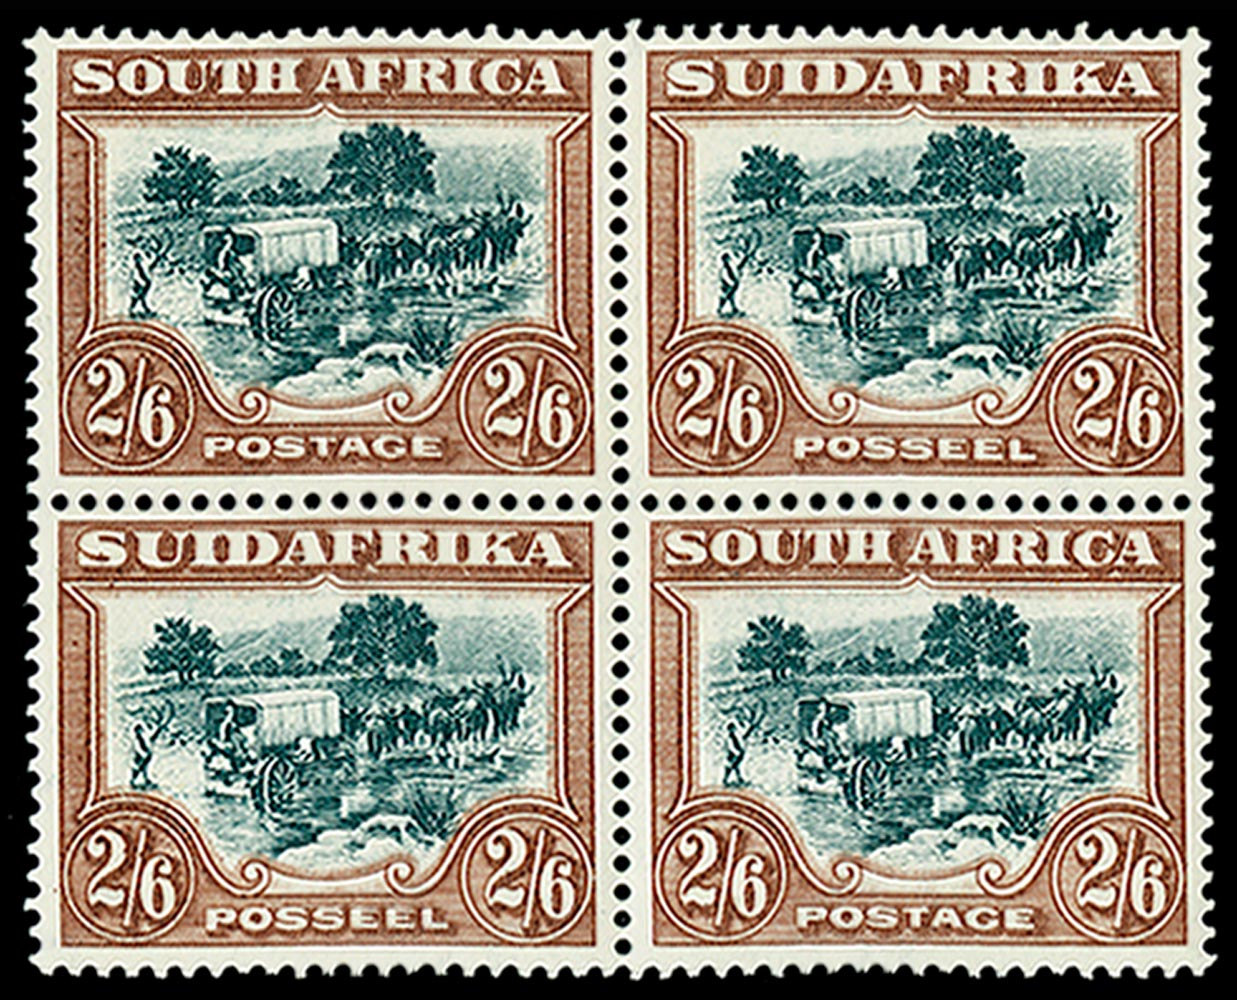 SOUTH AFRICA 1930  SG49aw Mint